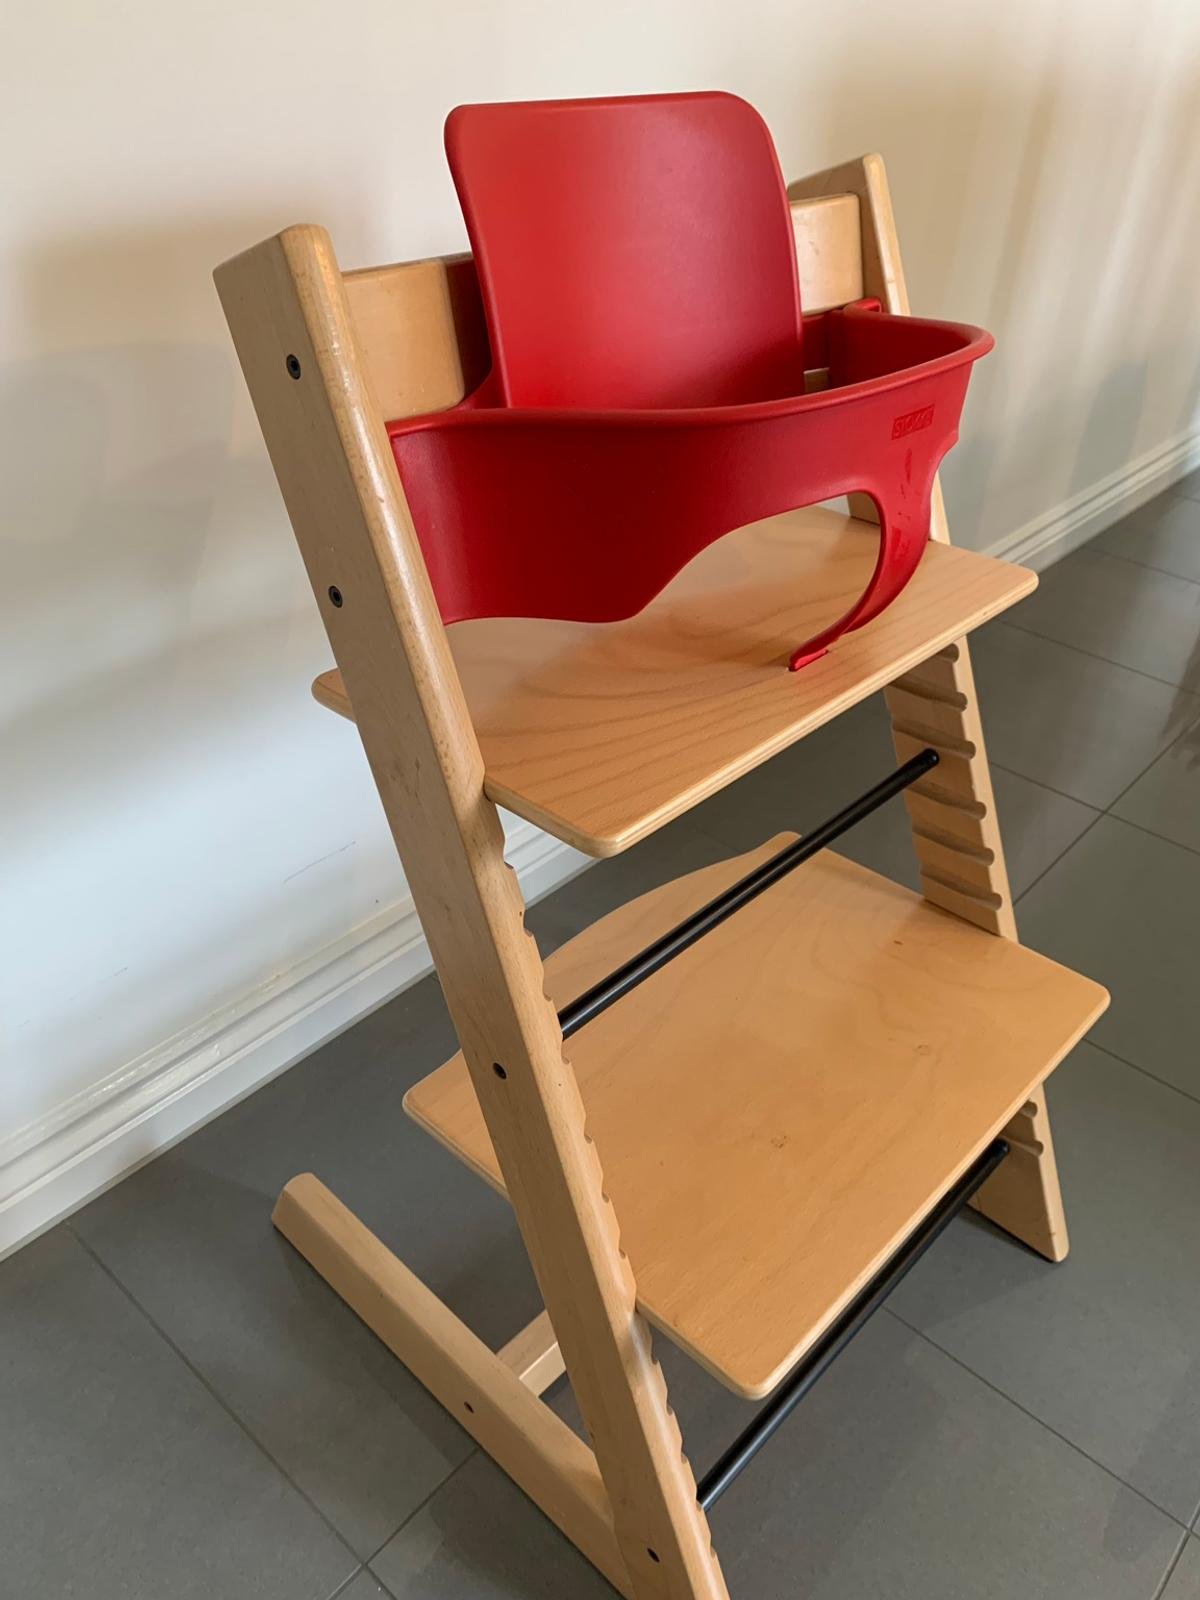 Outstanding Stokke Tripp Trapp High Chair Accessories In Leeds For Caraccident5 Cool Chair Designs And Ideas Caraccident5Info